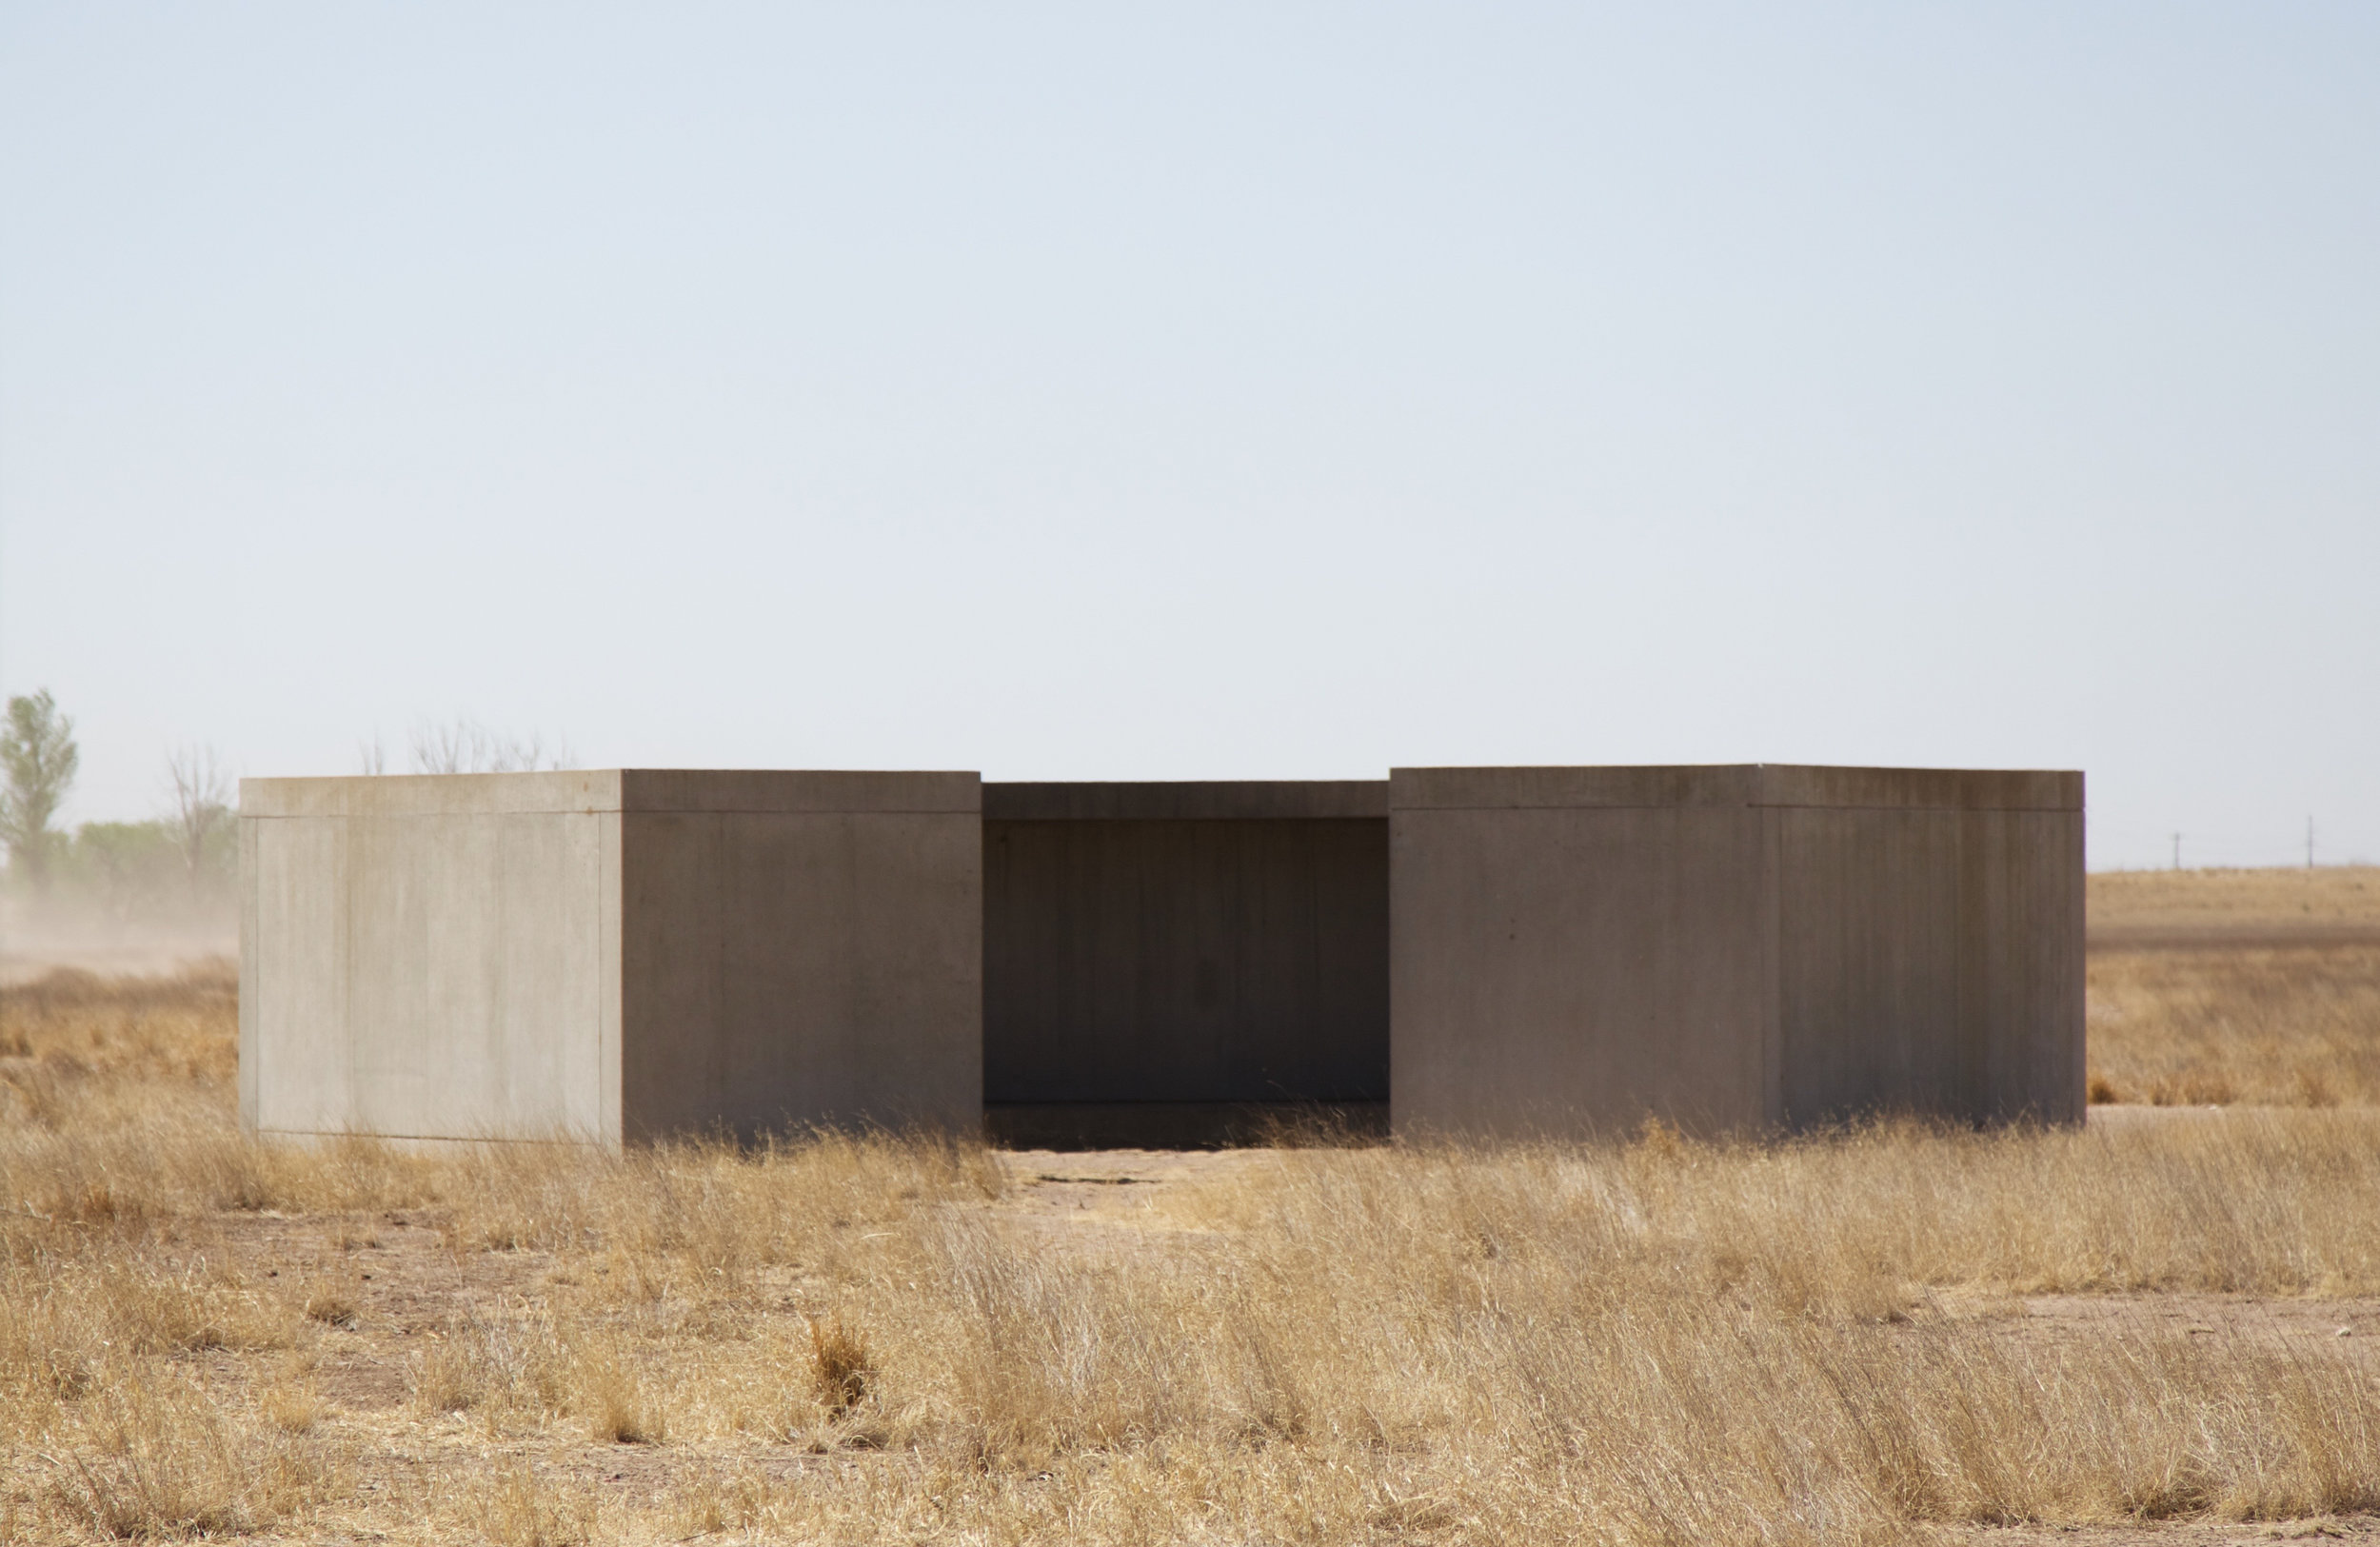 MARFA 2018 / MARFA MYTHS / CHINATI FOUNDATION